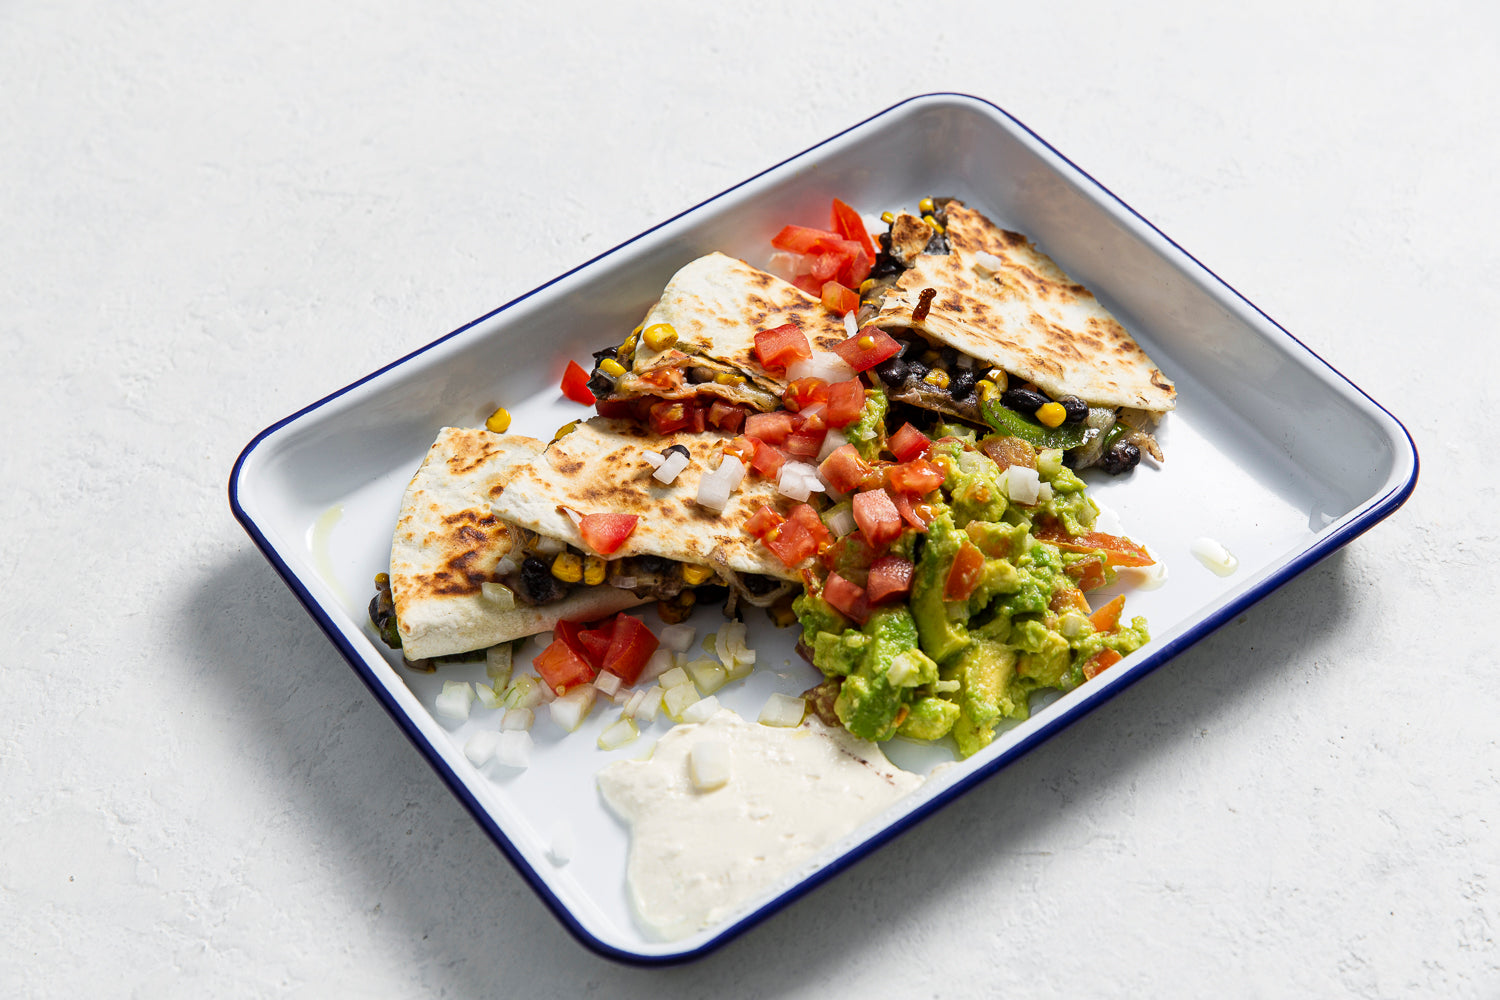 Black bean & corn quesadillas, guacamole